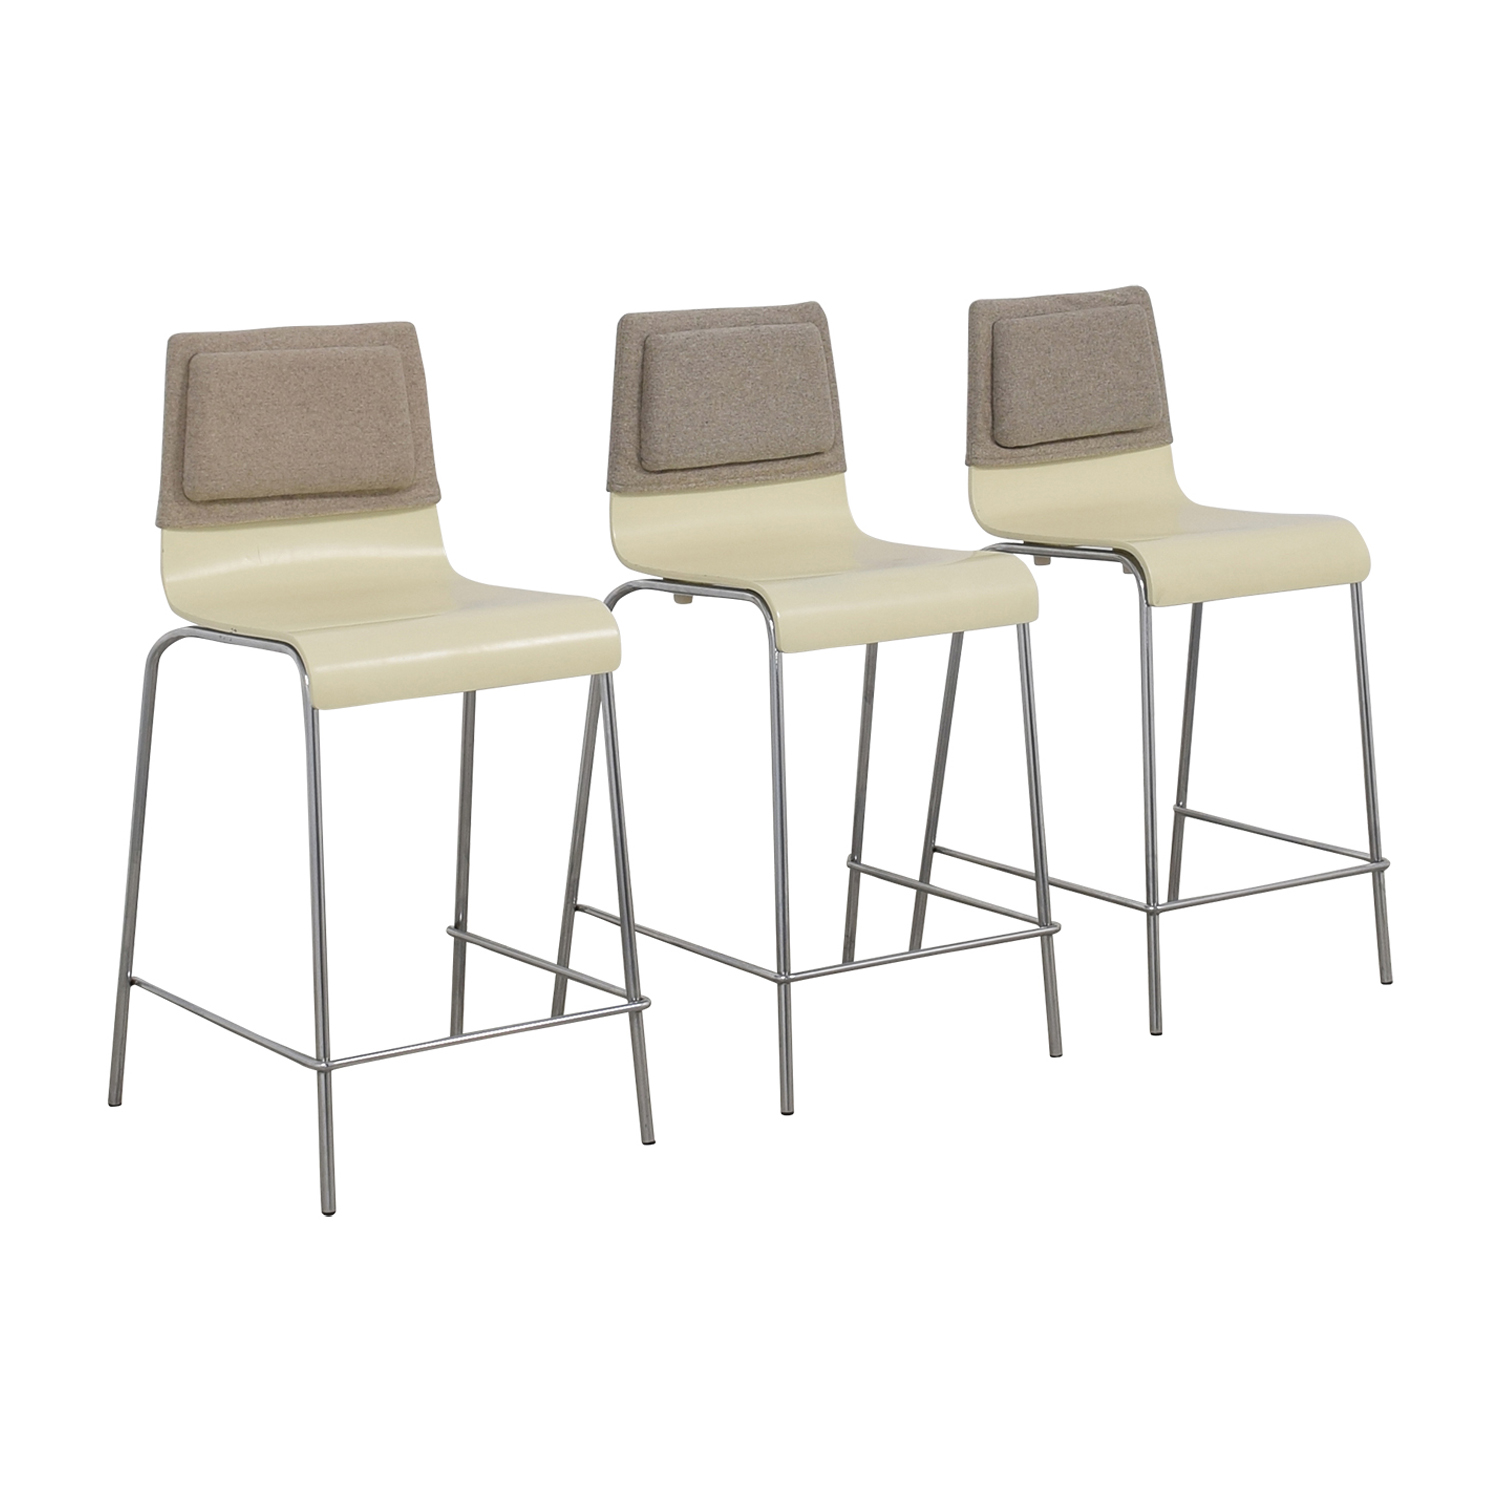 buy  White and Grey Stools with Back Felt Pads online